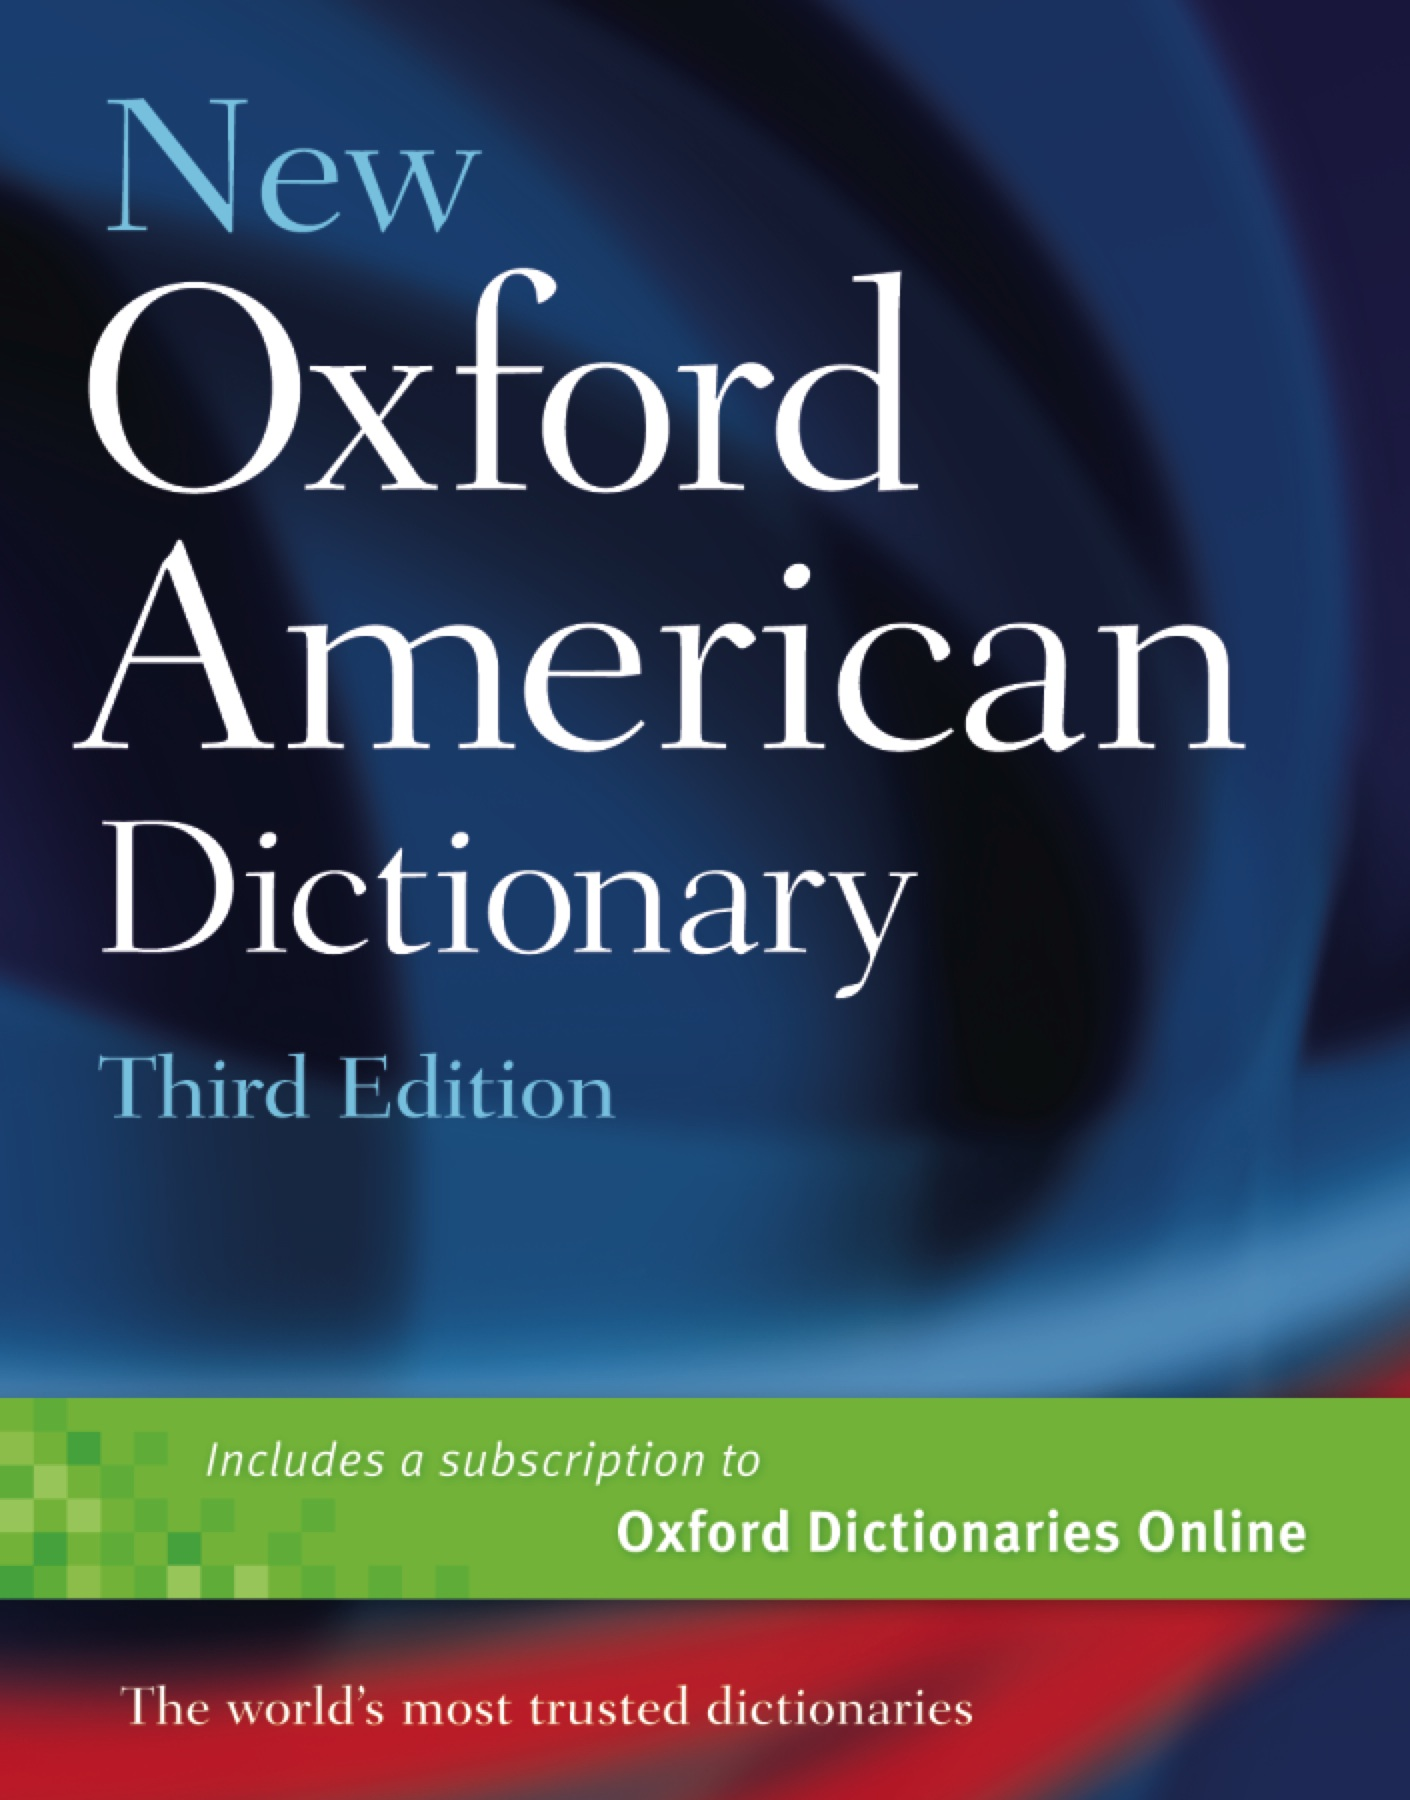 my bff just told me u0026quotttyl u0026quot is in the dictionary lmao